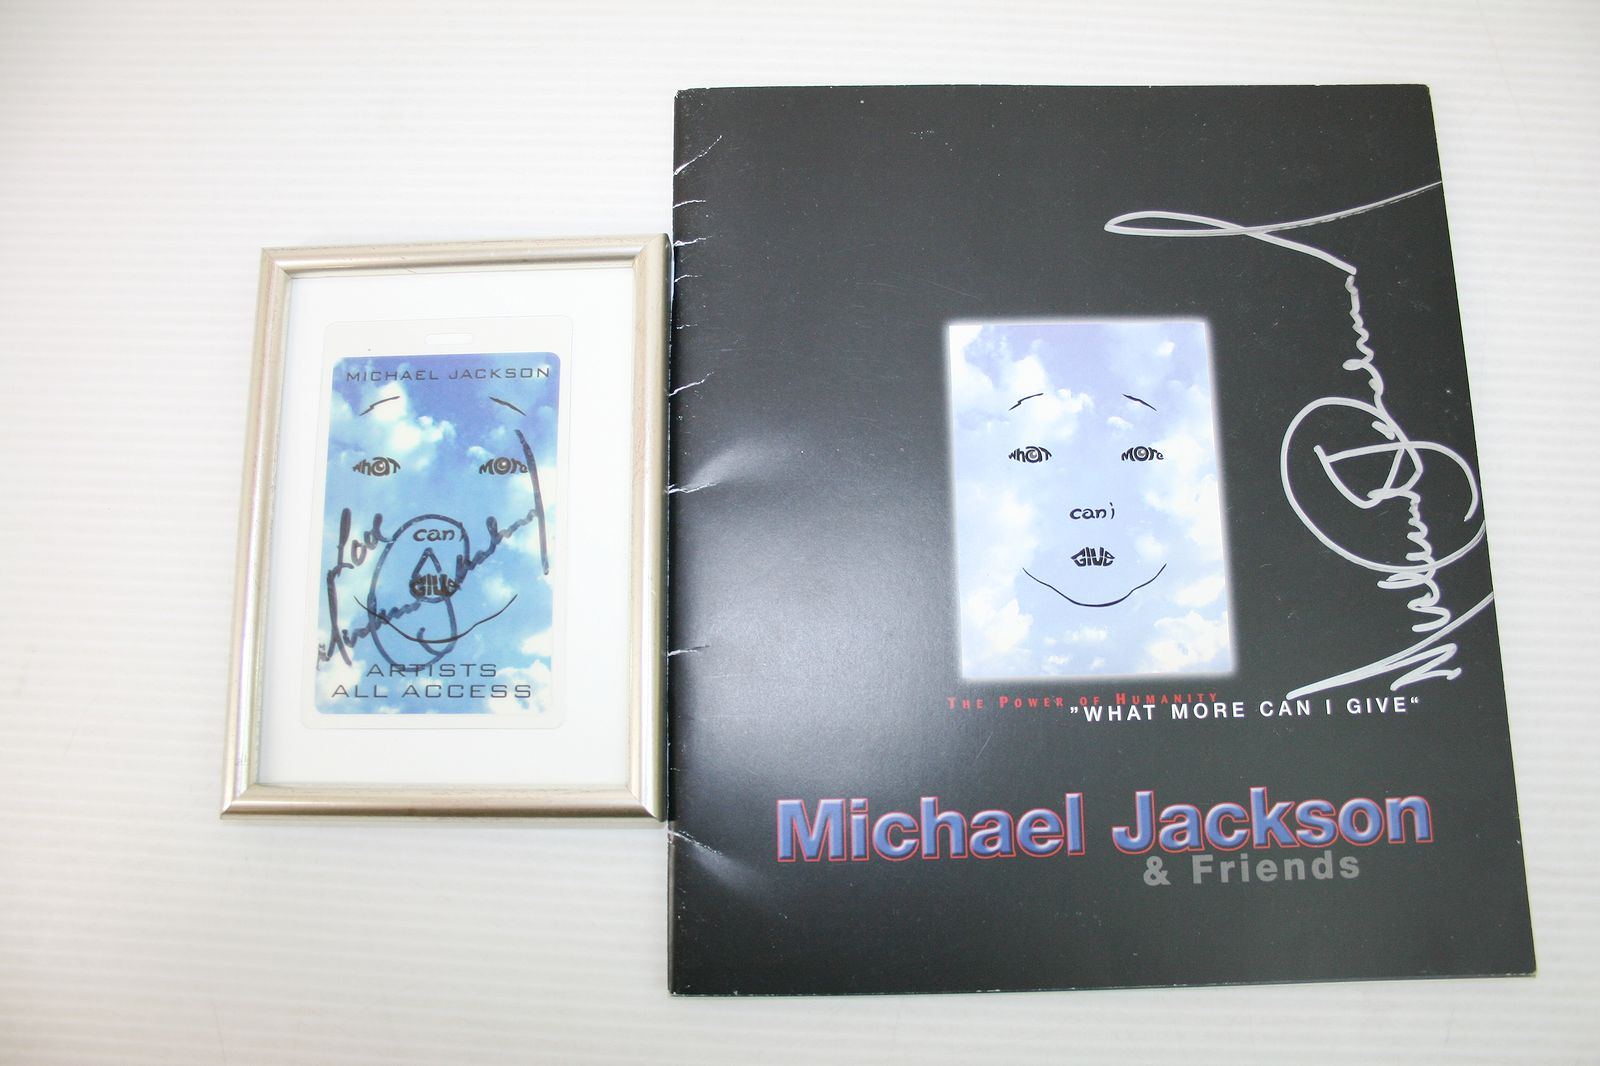 2010 Julien's AUCTION マイケル・ジャクソン What More Can I Give サイン入りパス&サイン入りプログラム